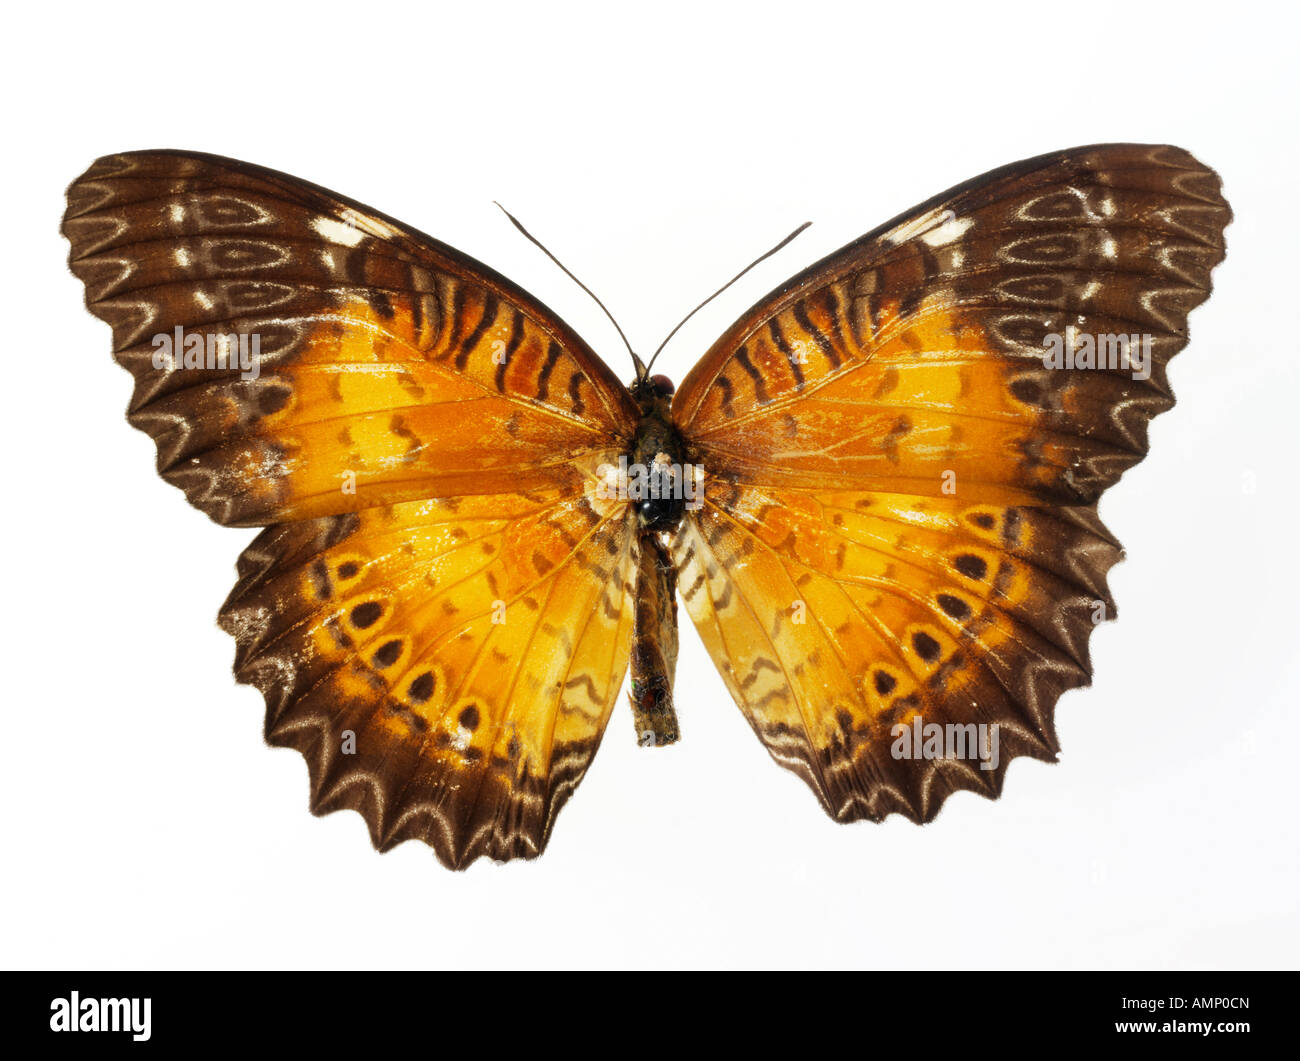 top shot plan view of a Halliconiini fritillary butterfly, opened winged, against a white background in a studio - Stock Image